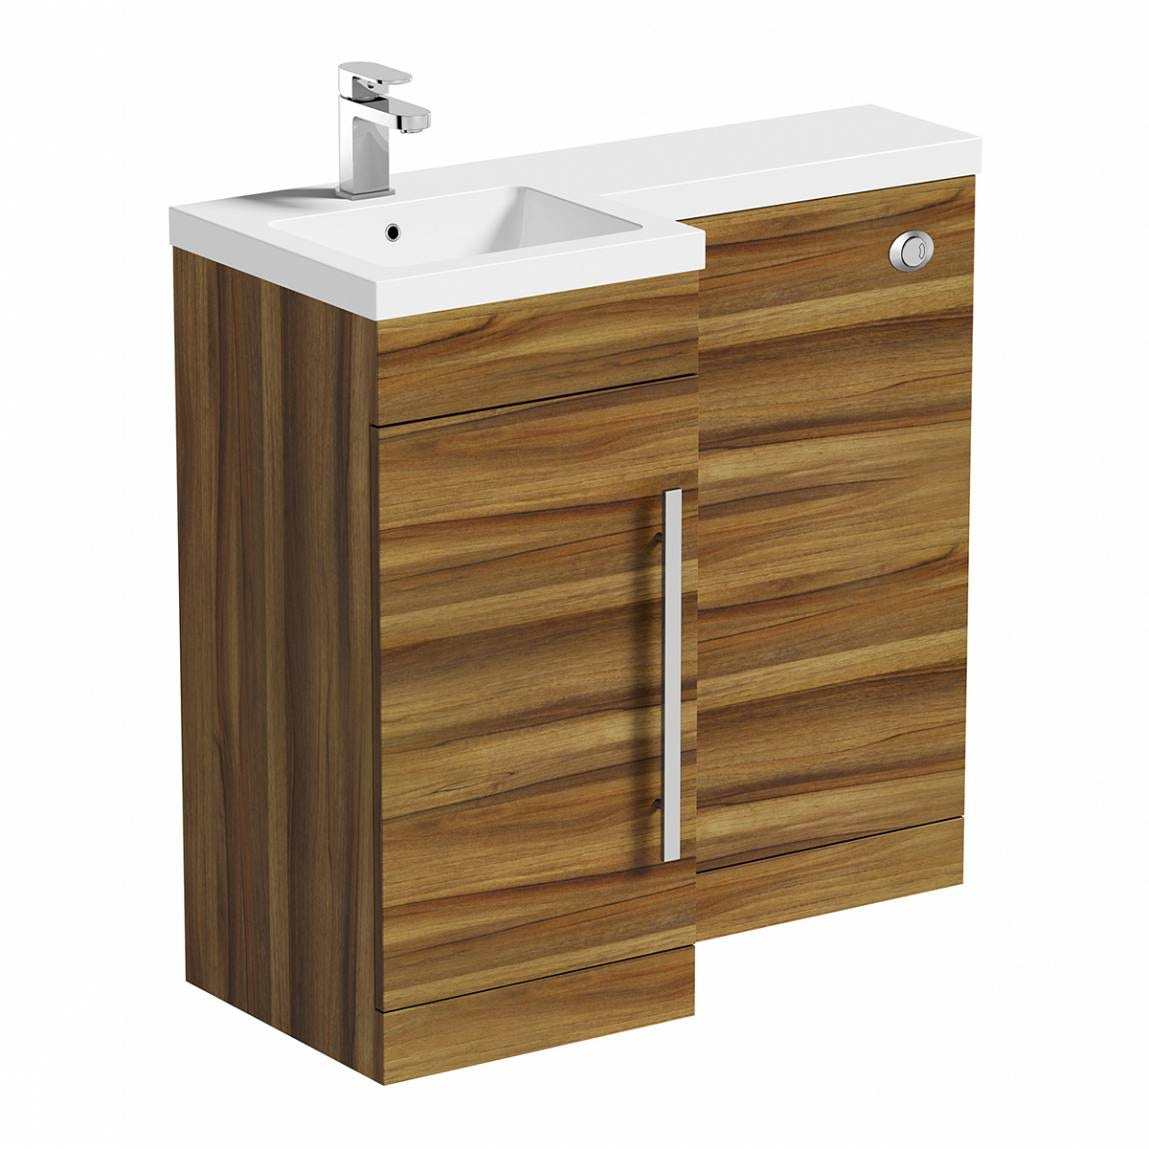 Orchard MySpace walnut left handed unit including concealed cistern